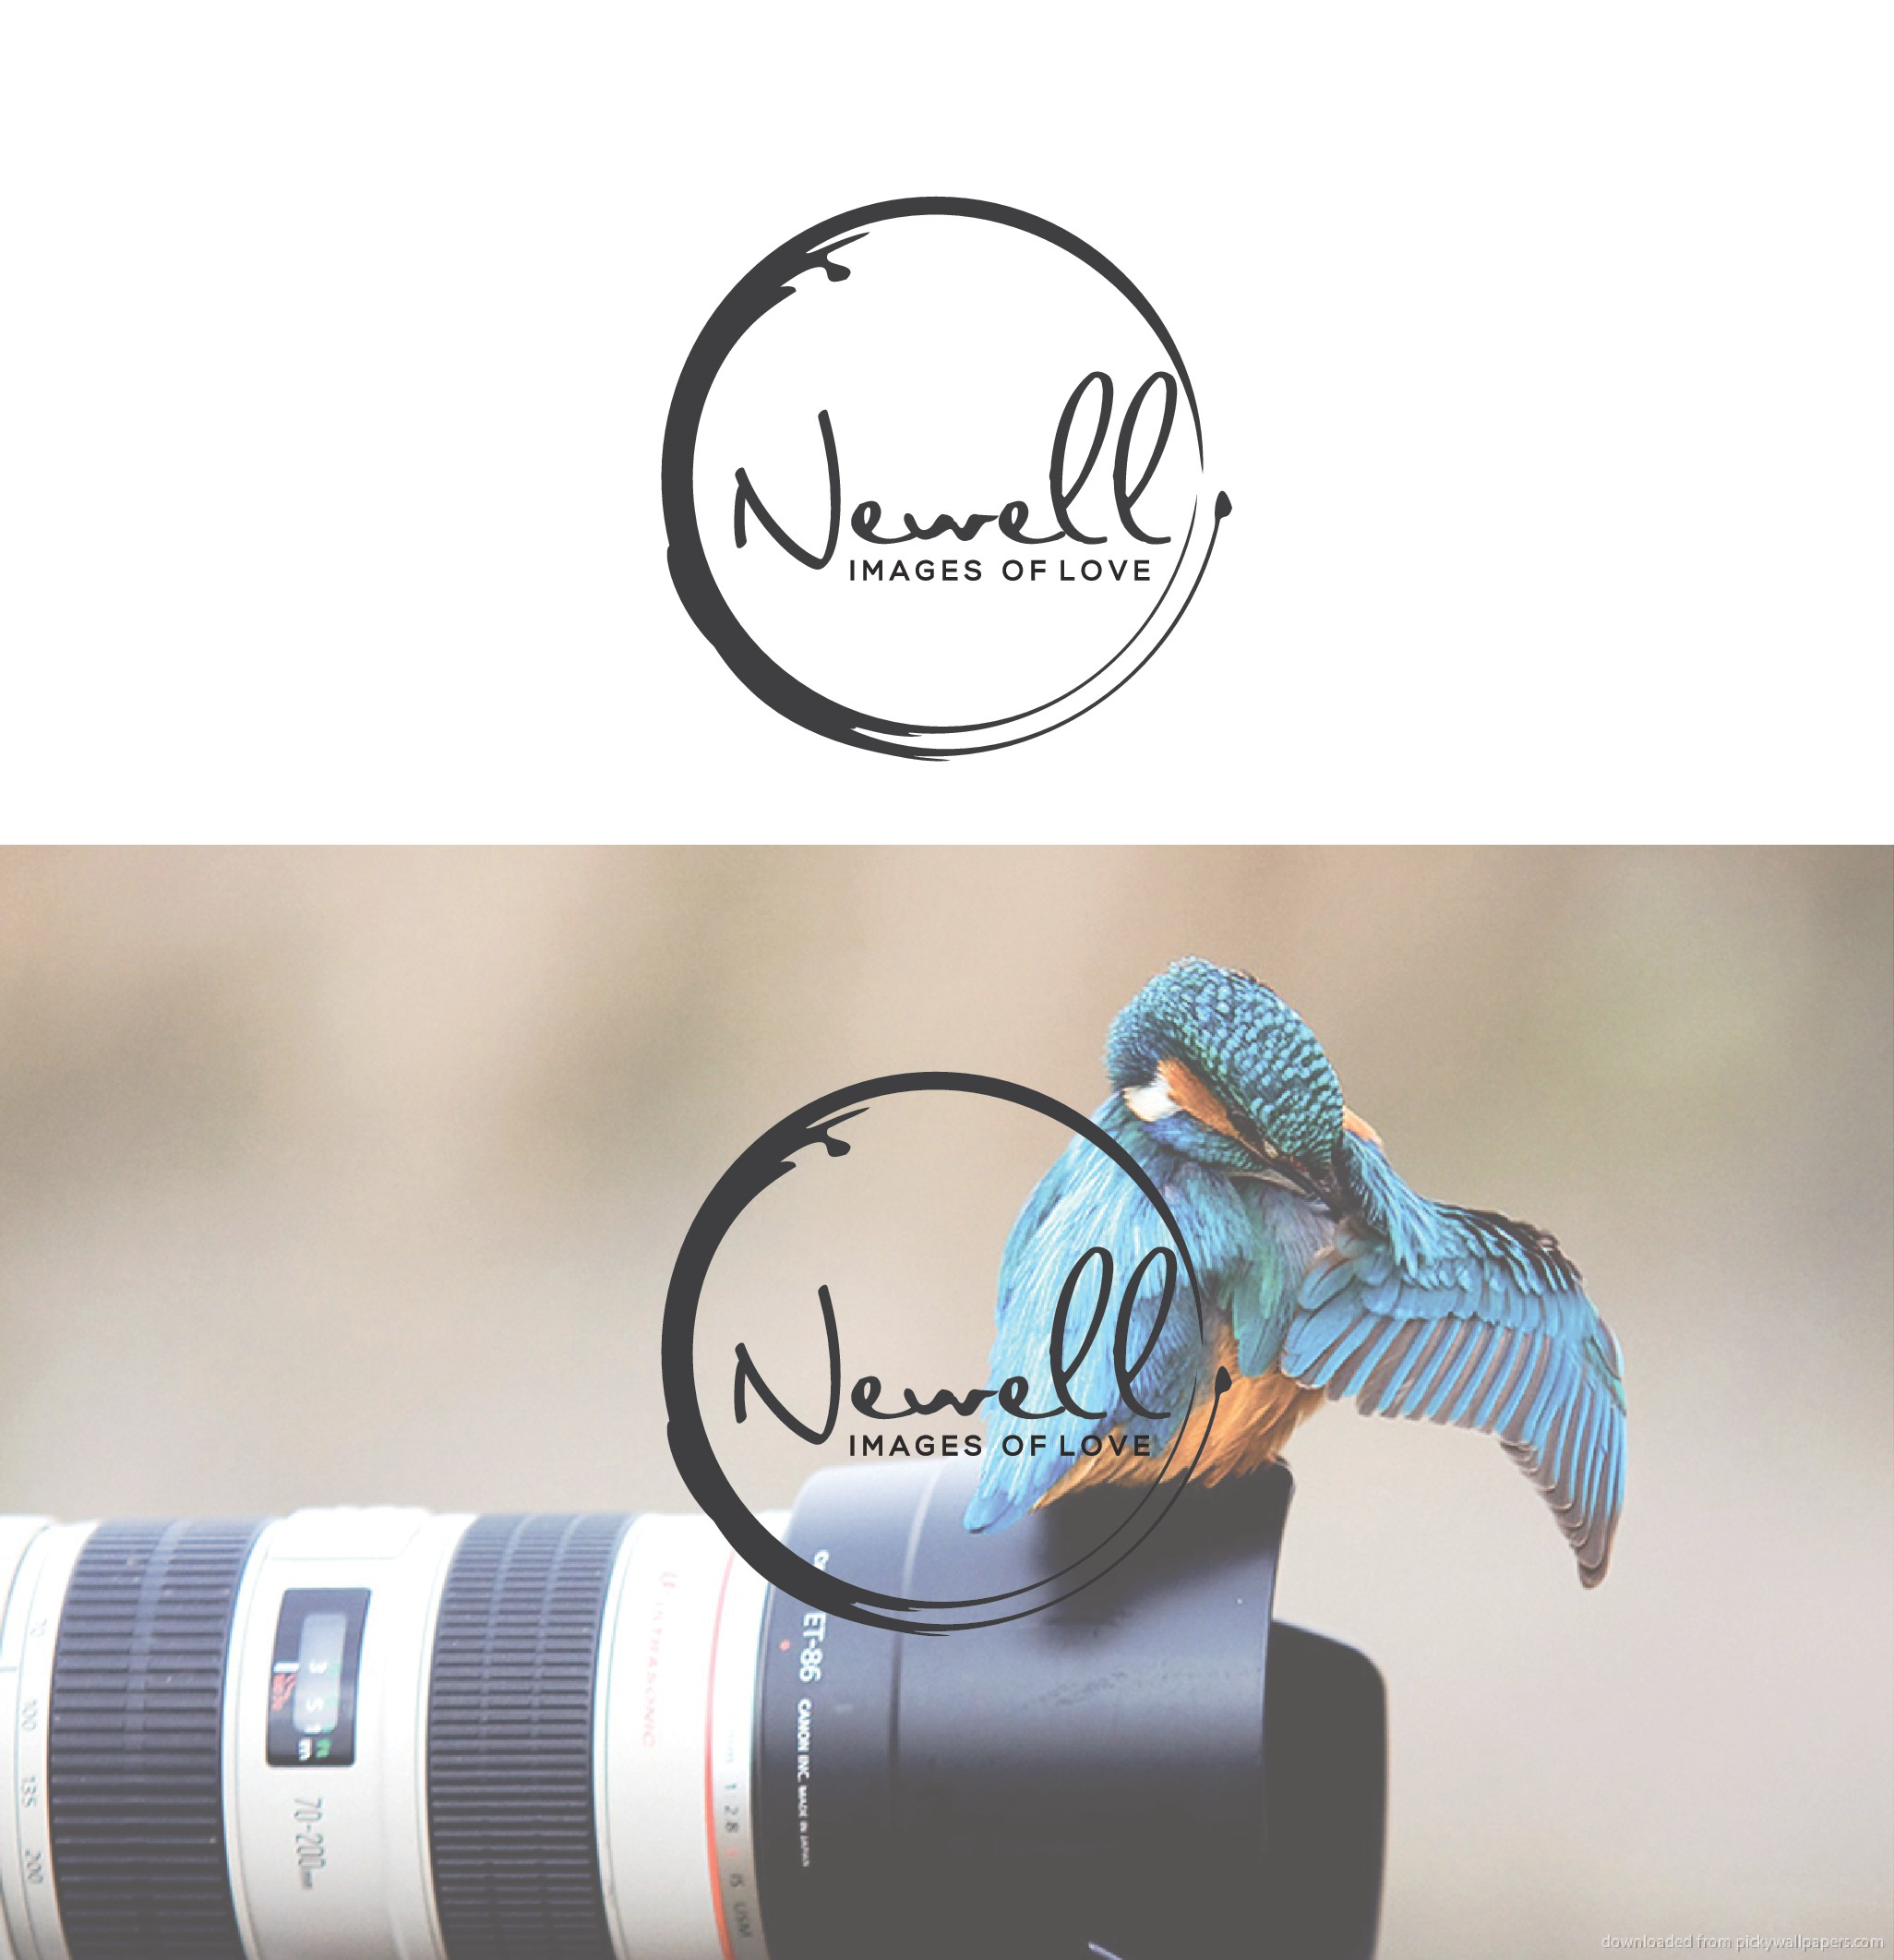 Design a sophisticated logo for Newell Images of Love